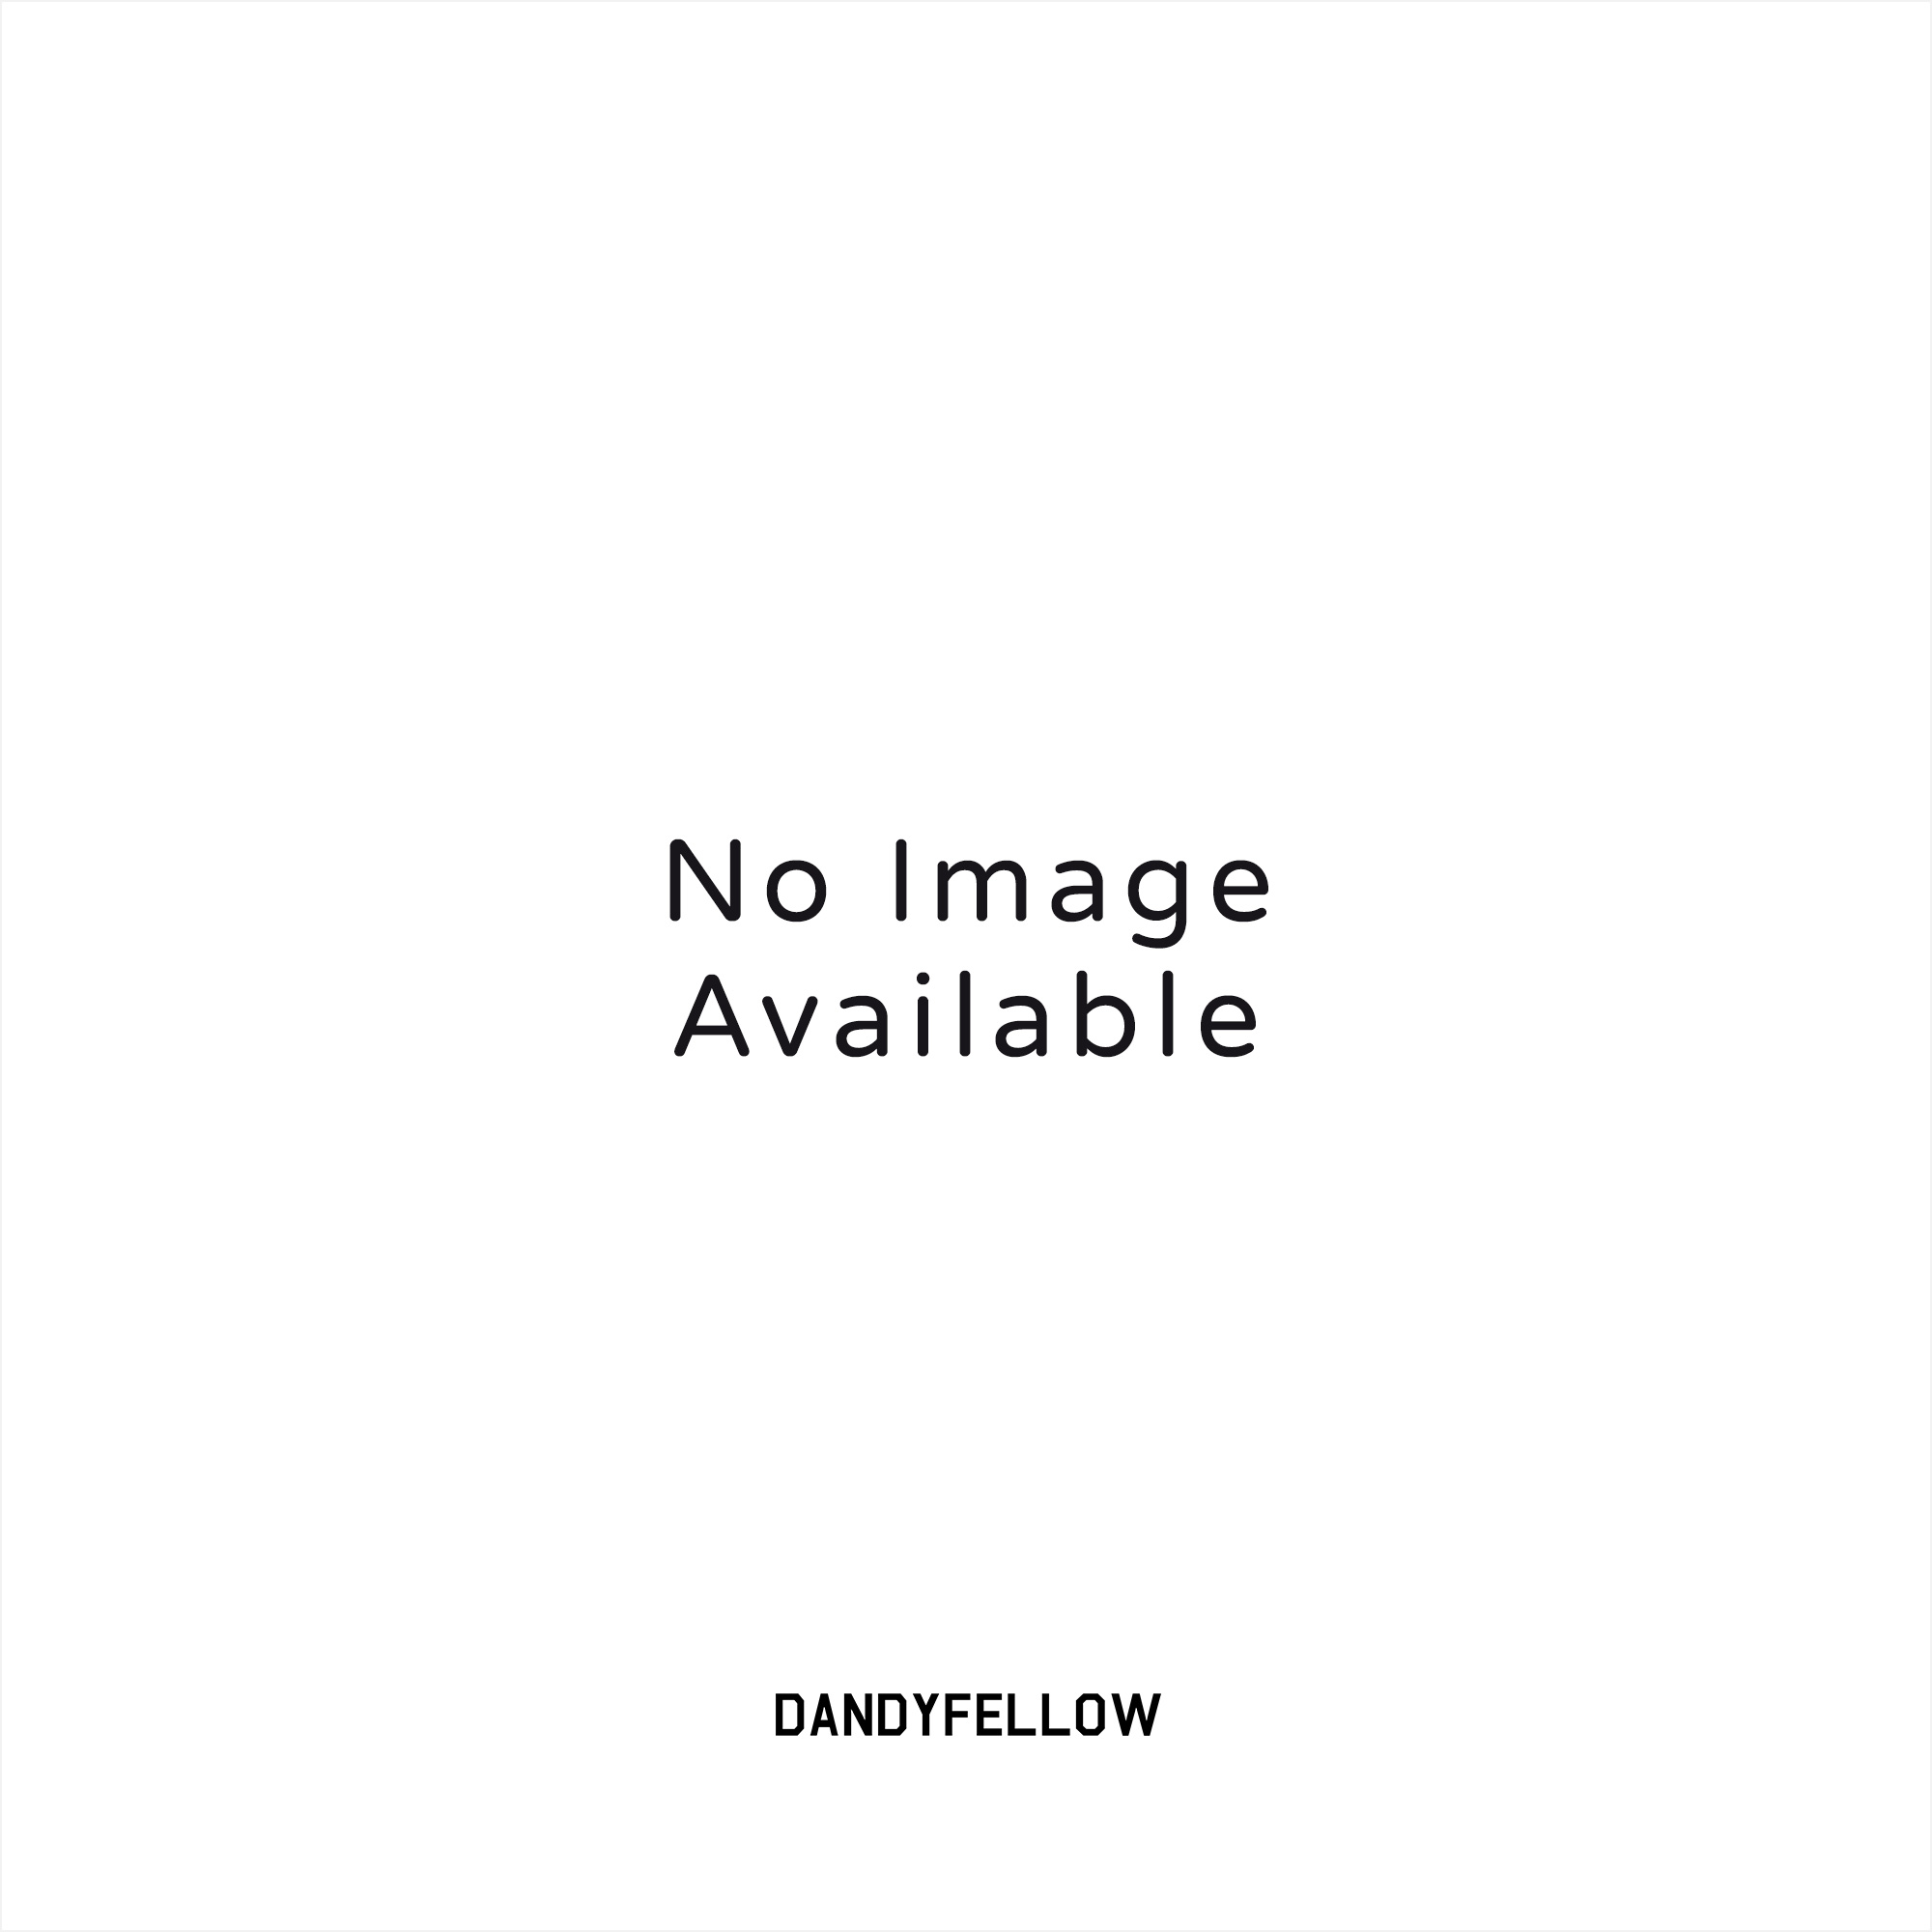 2239d8853fa Adidas Originals High Beanie (Black) at Dandy Fellow